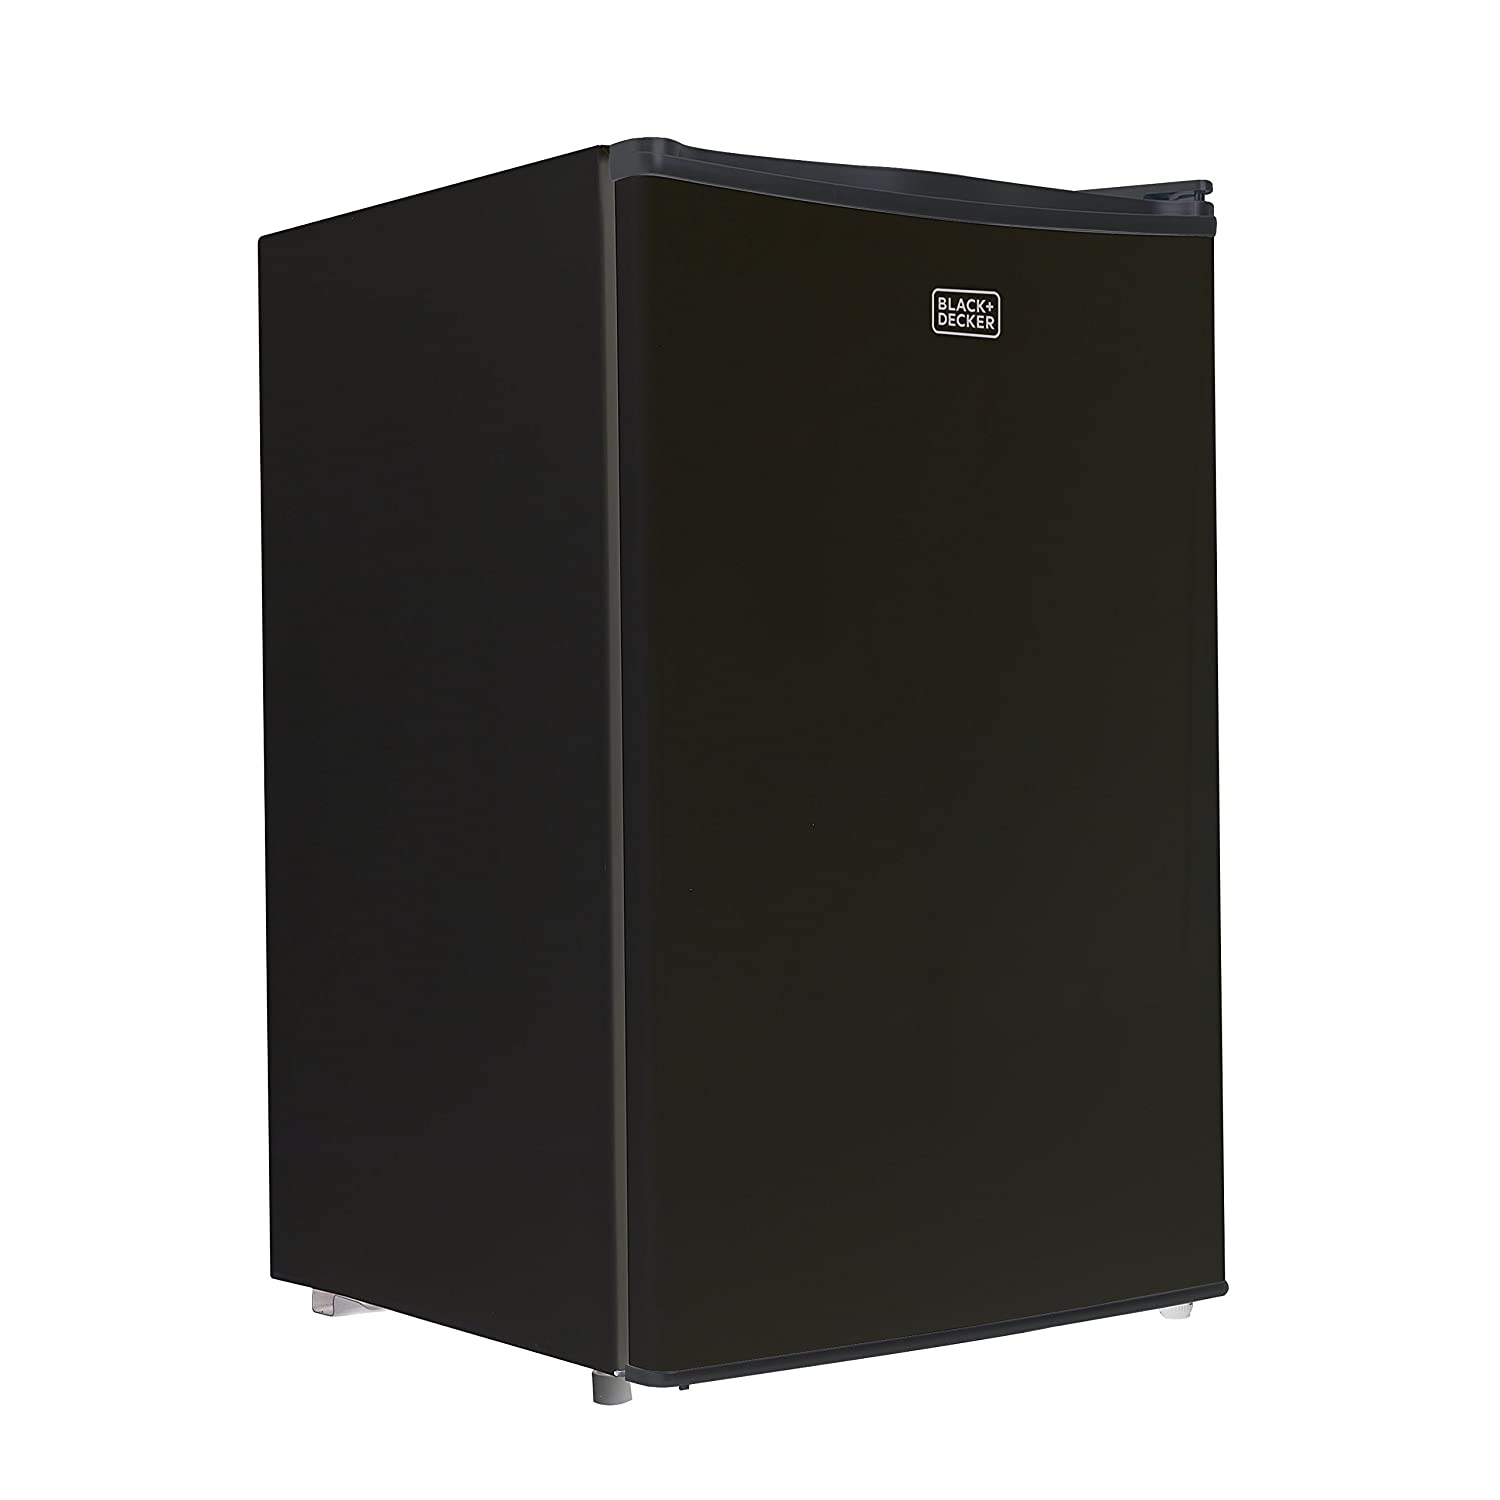 BLACK+DECKER BCRK43B Compact Refrigerator Energy Star Single Door Mini Fridge with Freezer, 4.3 Cubic Ft, Black